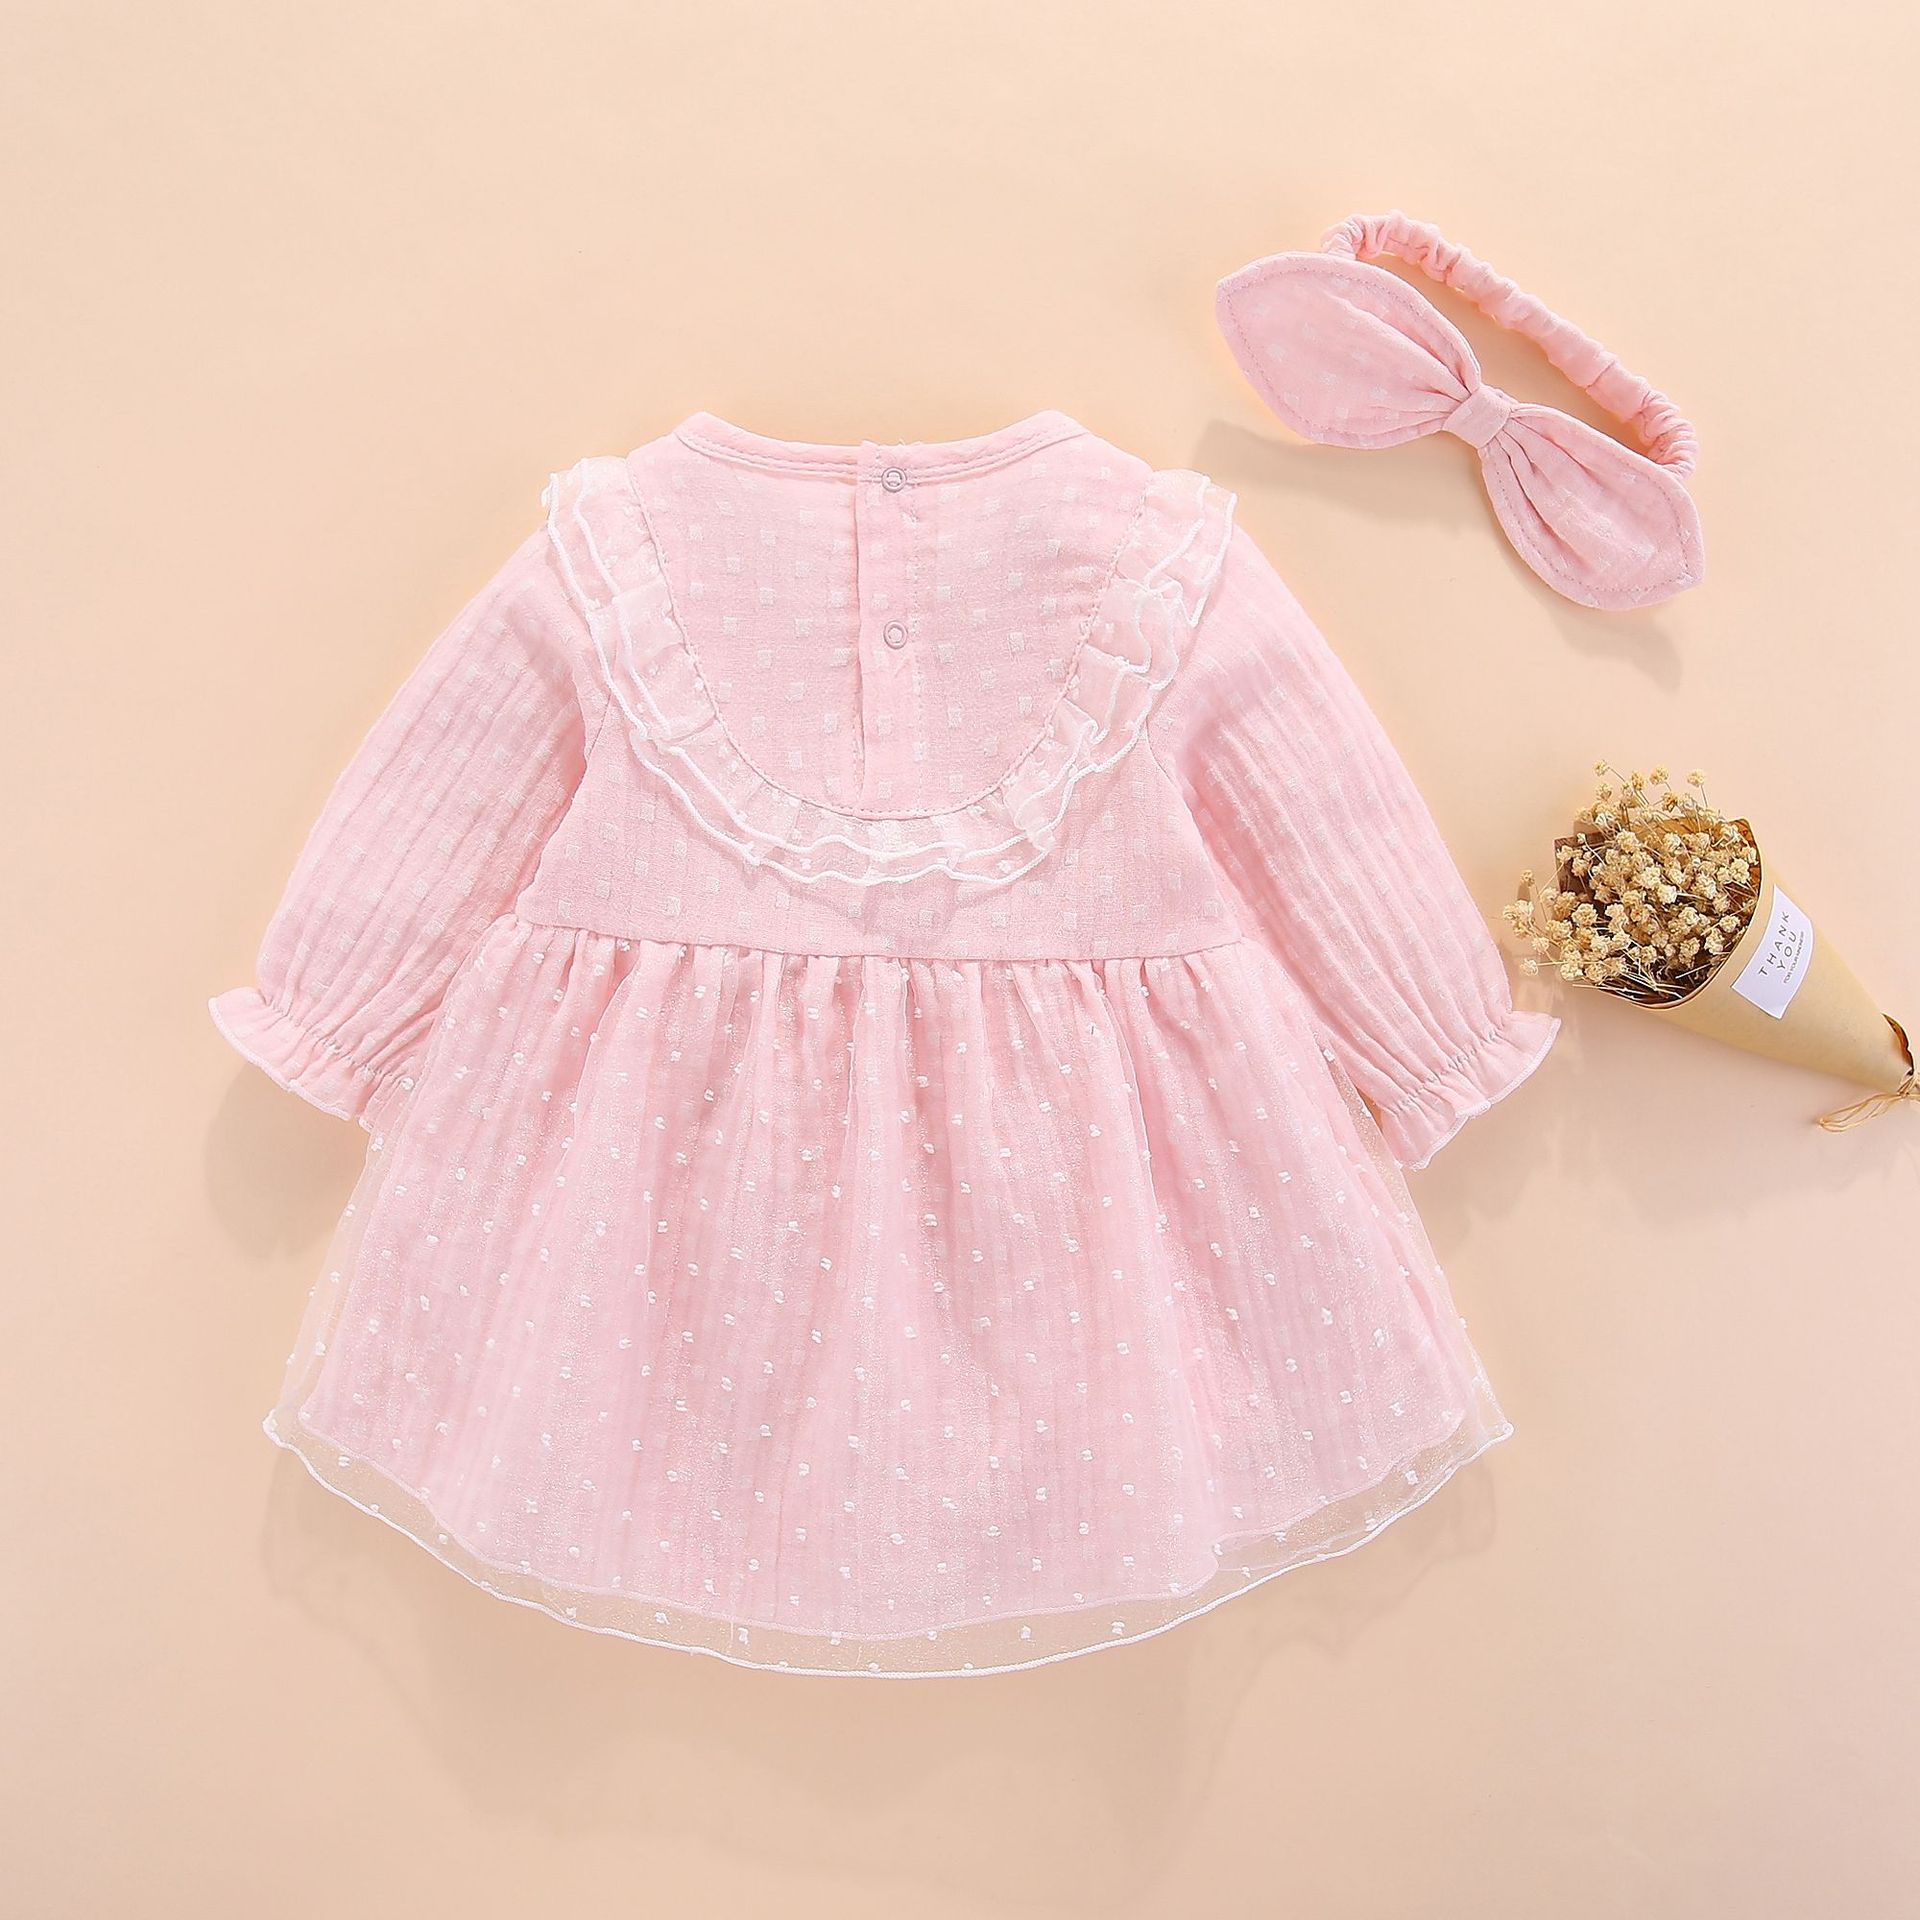 f8433f80acb0 new born baby girl clothes dresses little girls clothing sets 0 3 ...